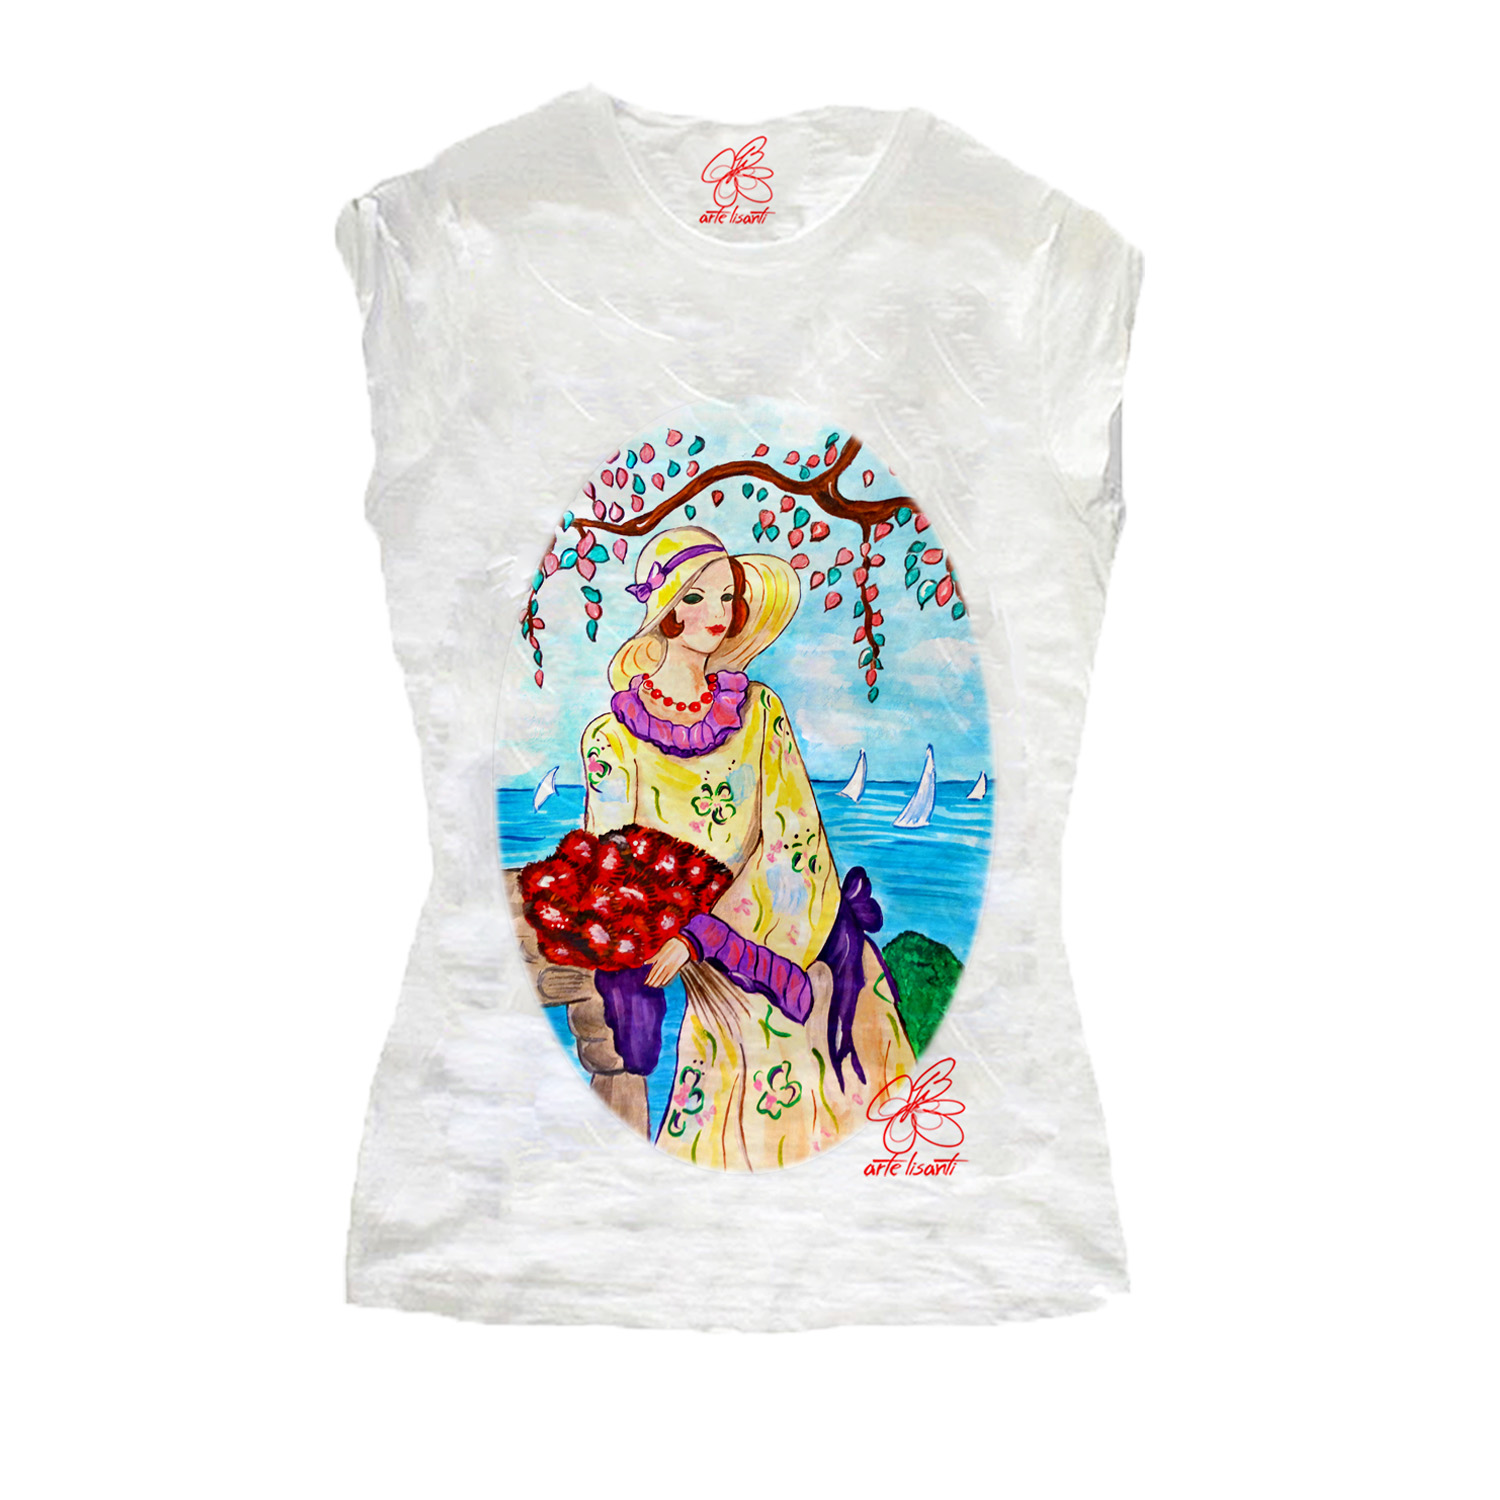 Hand-painted T-shirts - At the sea